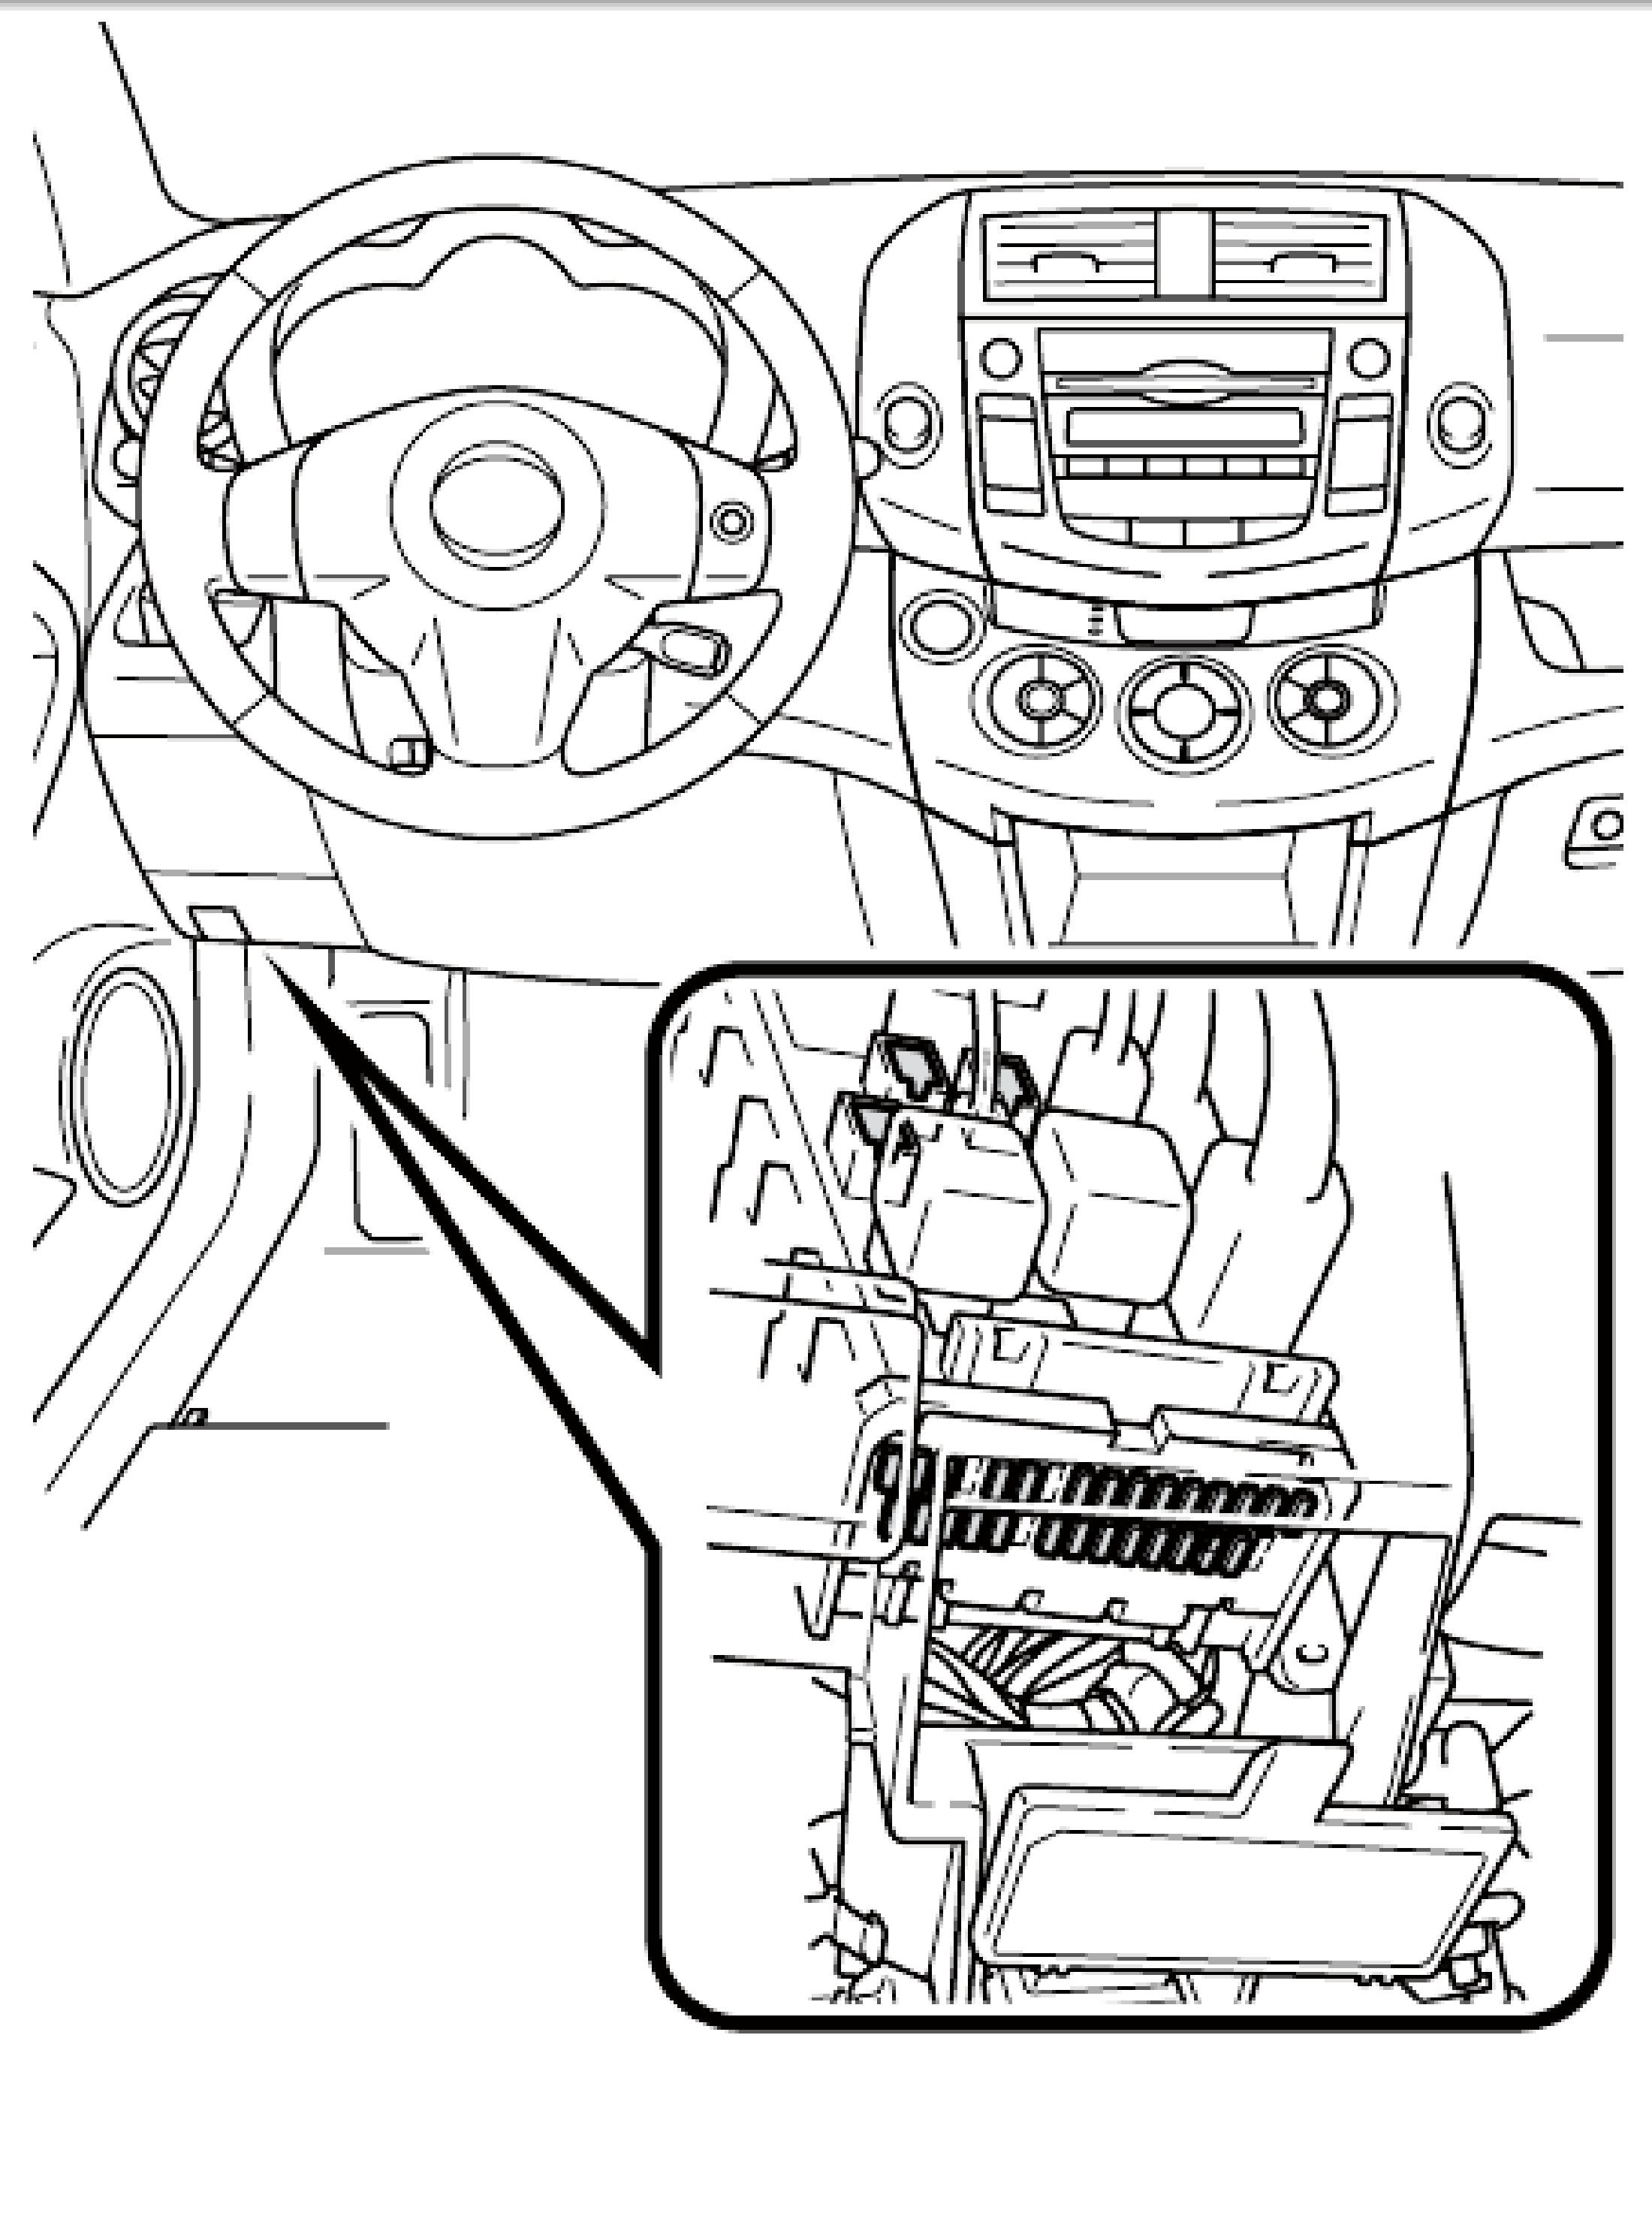 Chevy Lumina Fuse Box Diagram